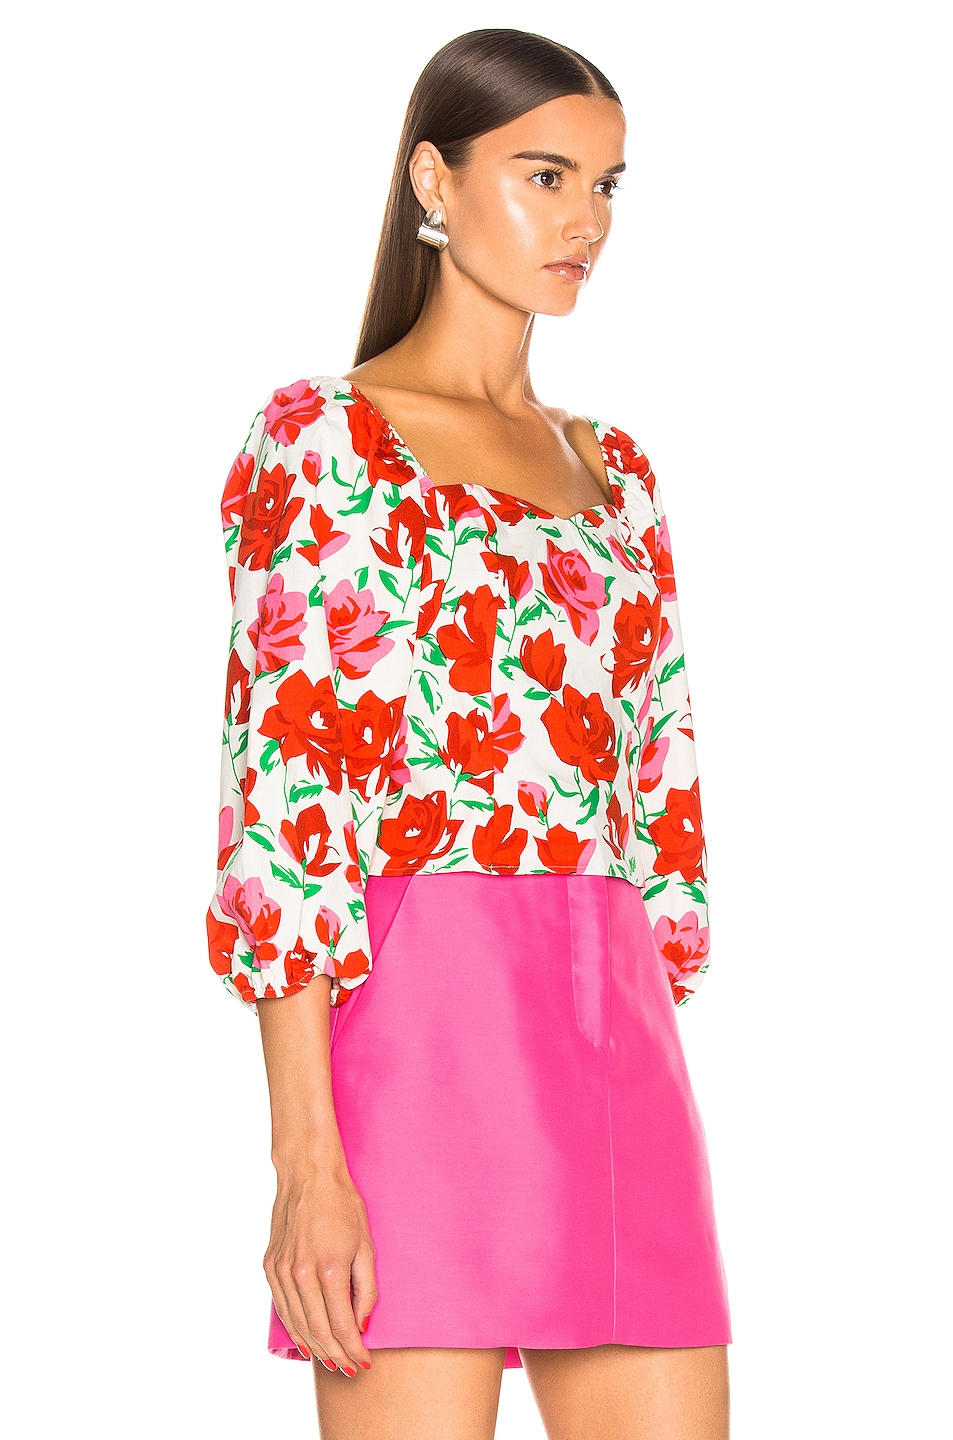 Image 2 of RIXO Veronica Top in White & Red Large Rose